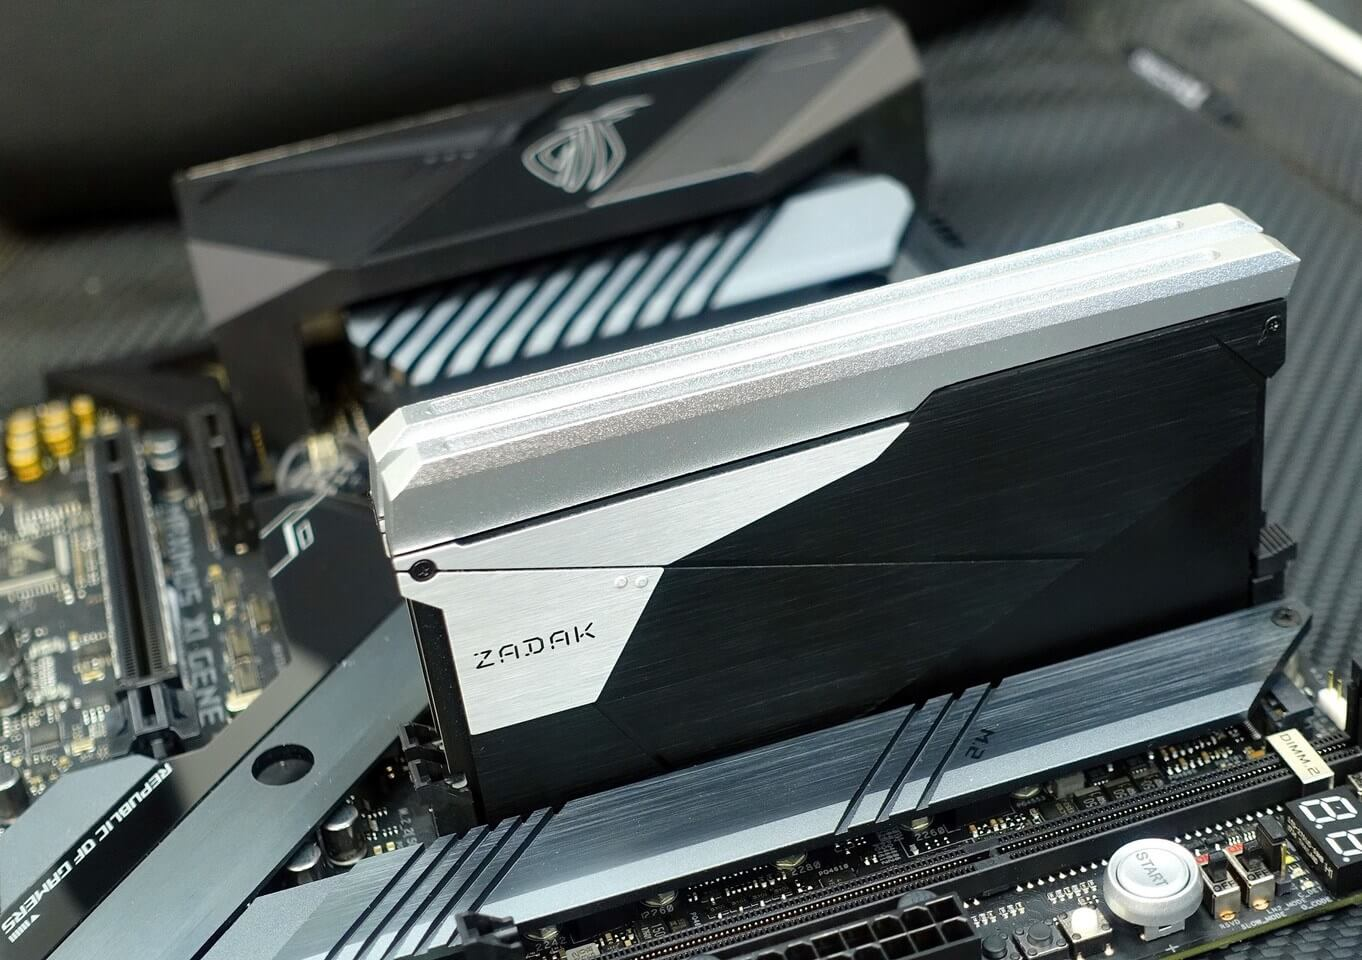 Intel's 9th-gen CPUs will support 128GB of DDR4 RAM